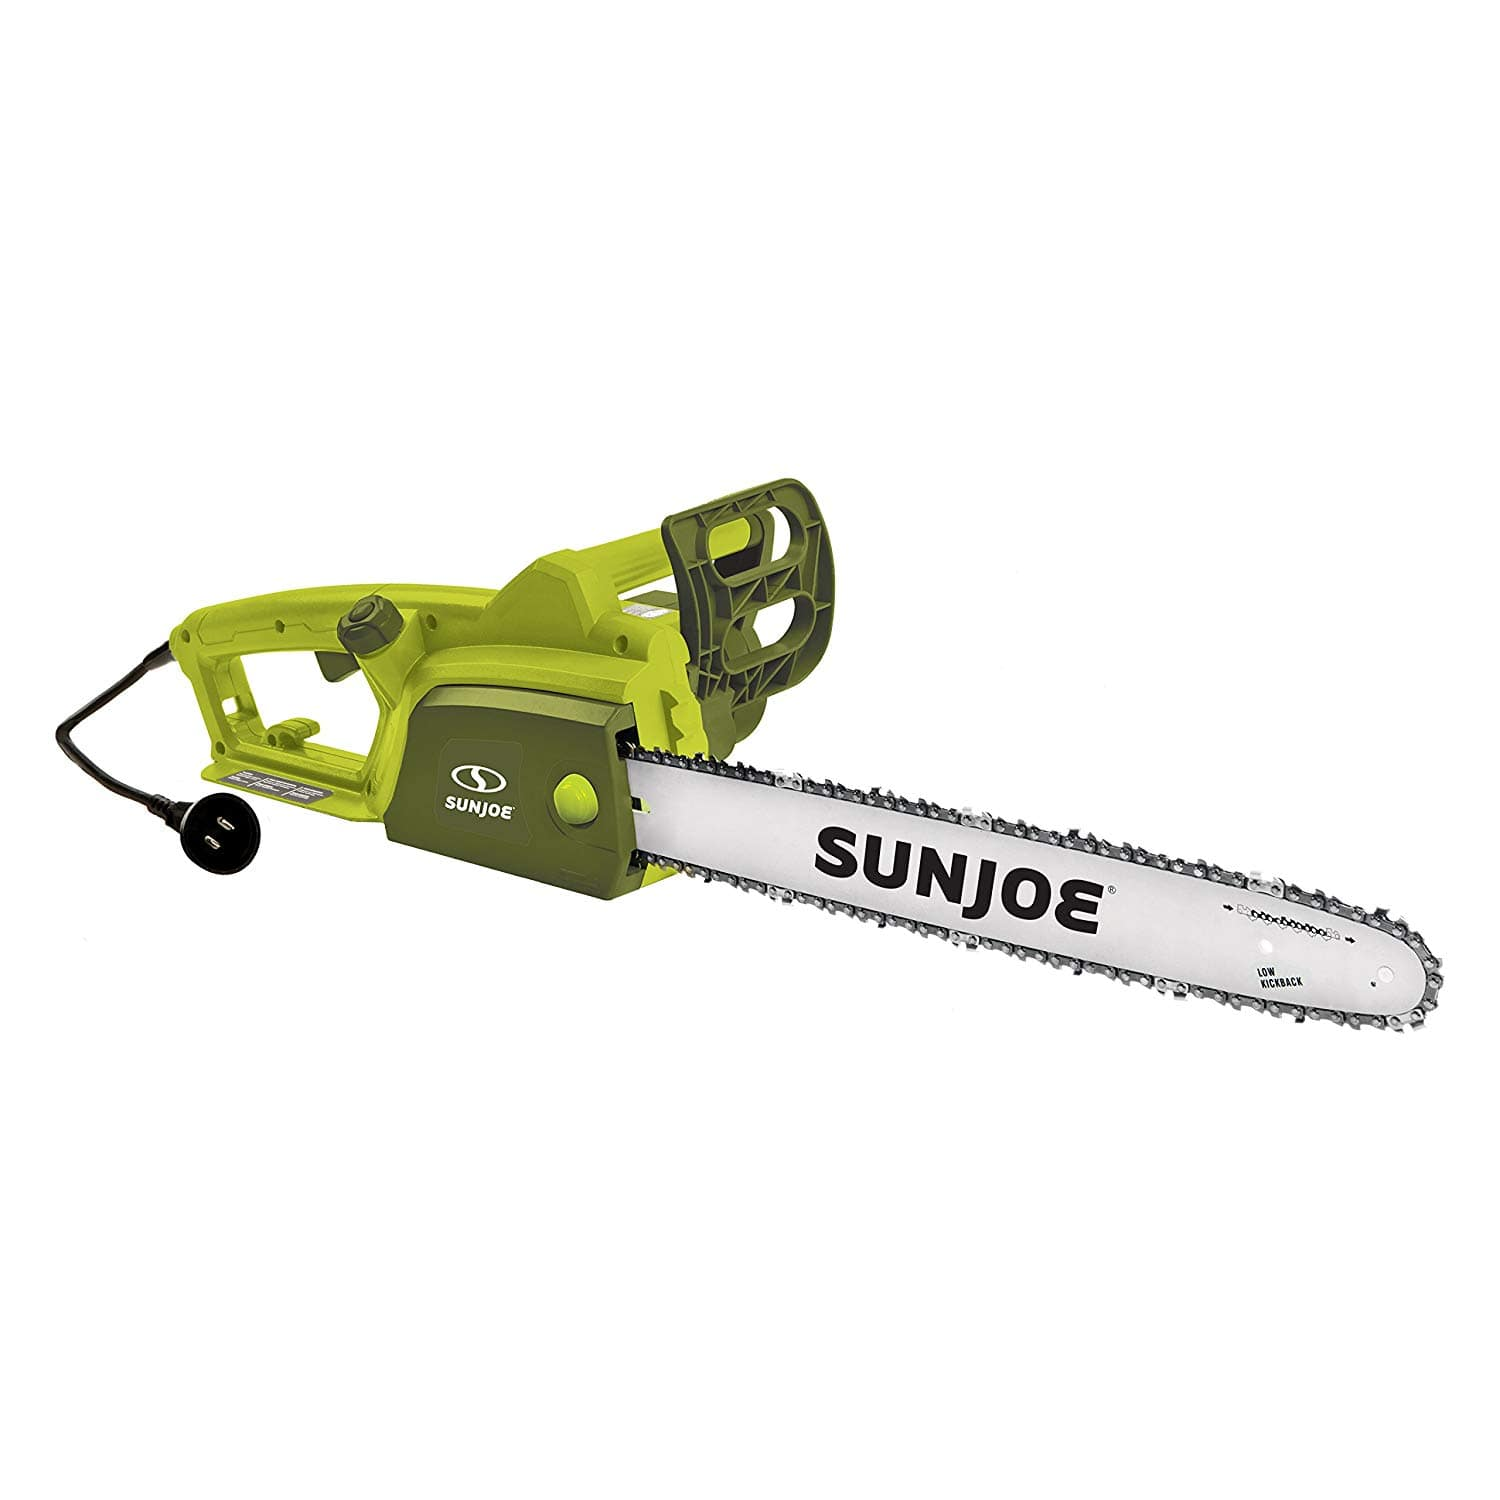 Sun Joe 18-inch 14.0 Amp Electric Chain Saw $40 Amazon